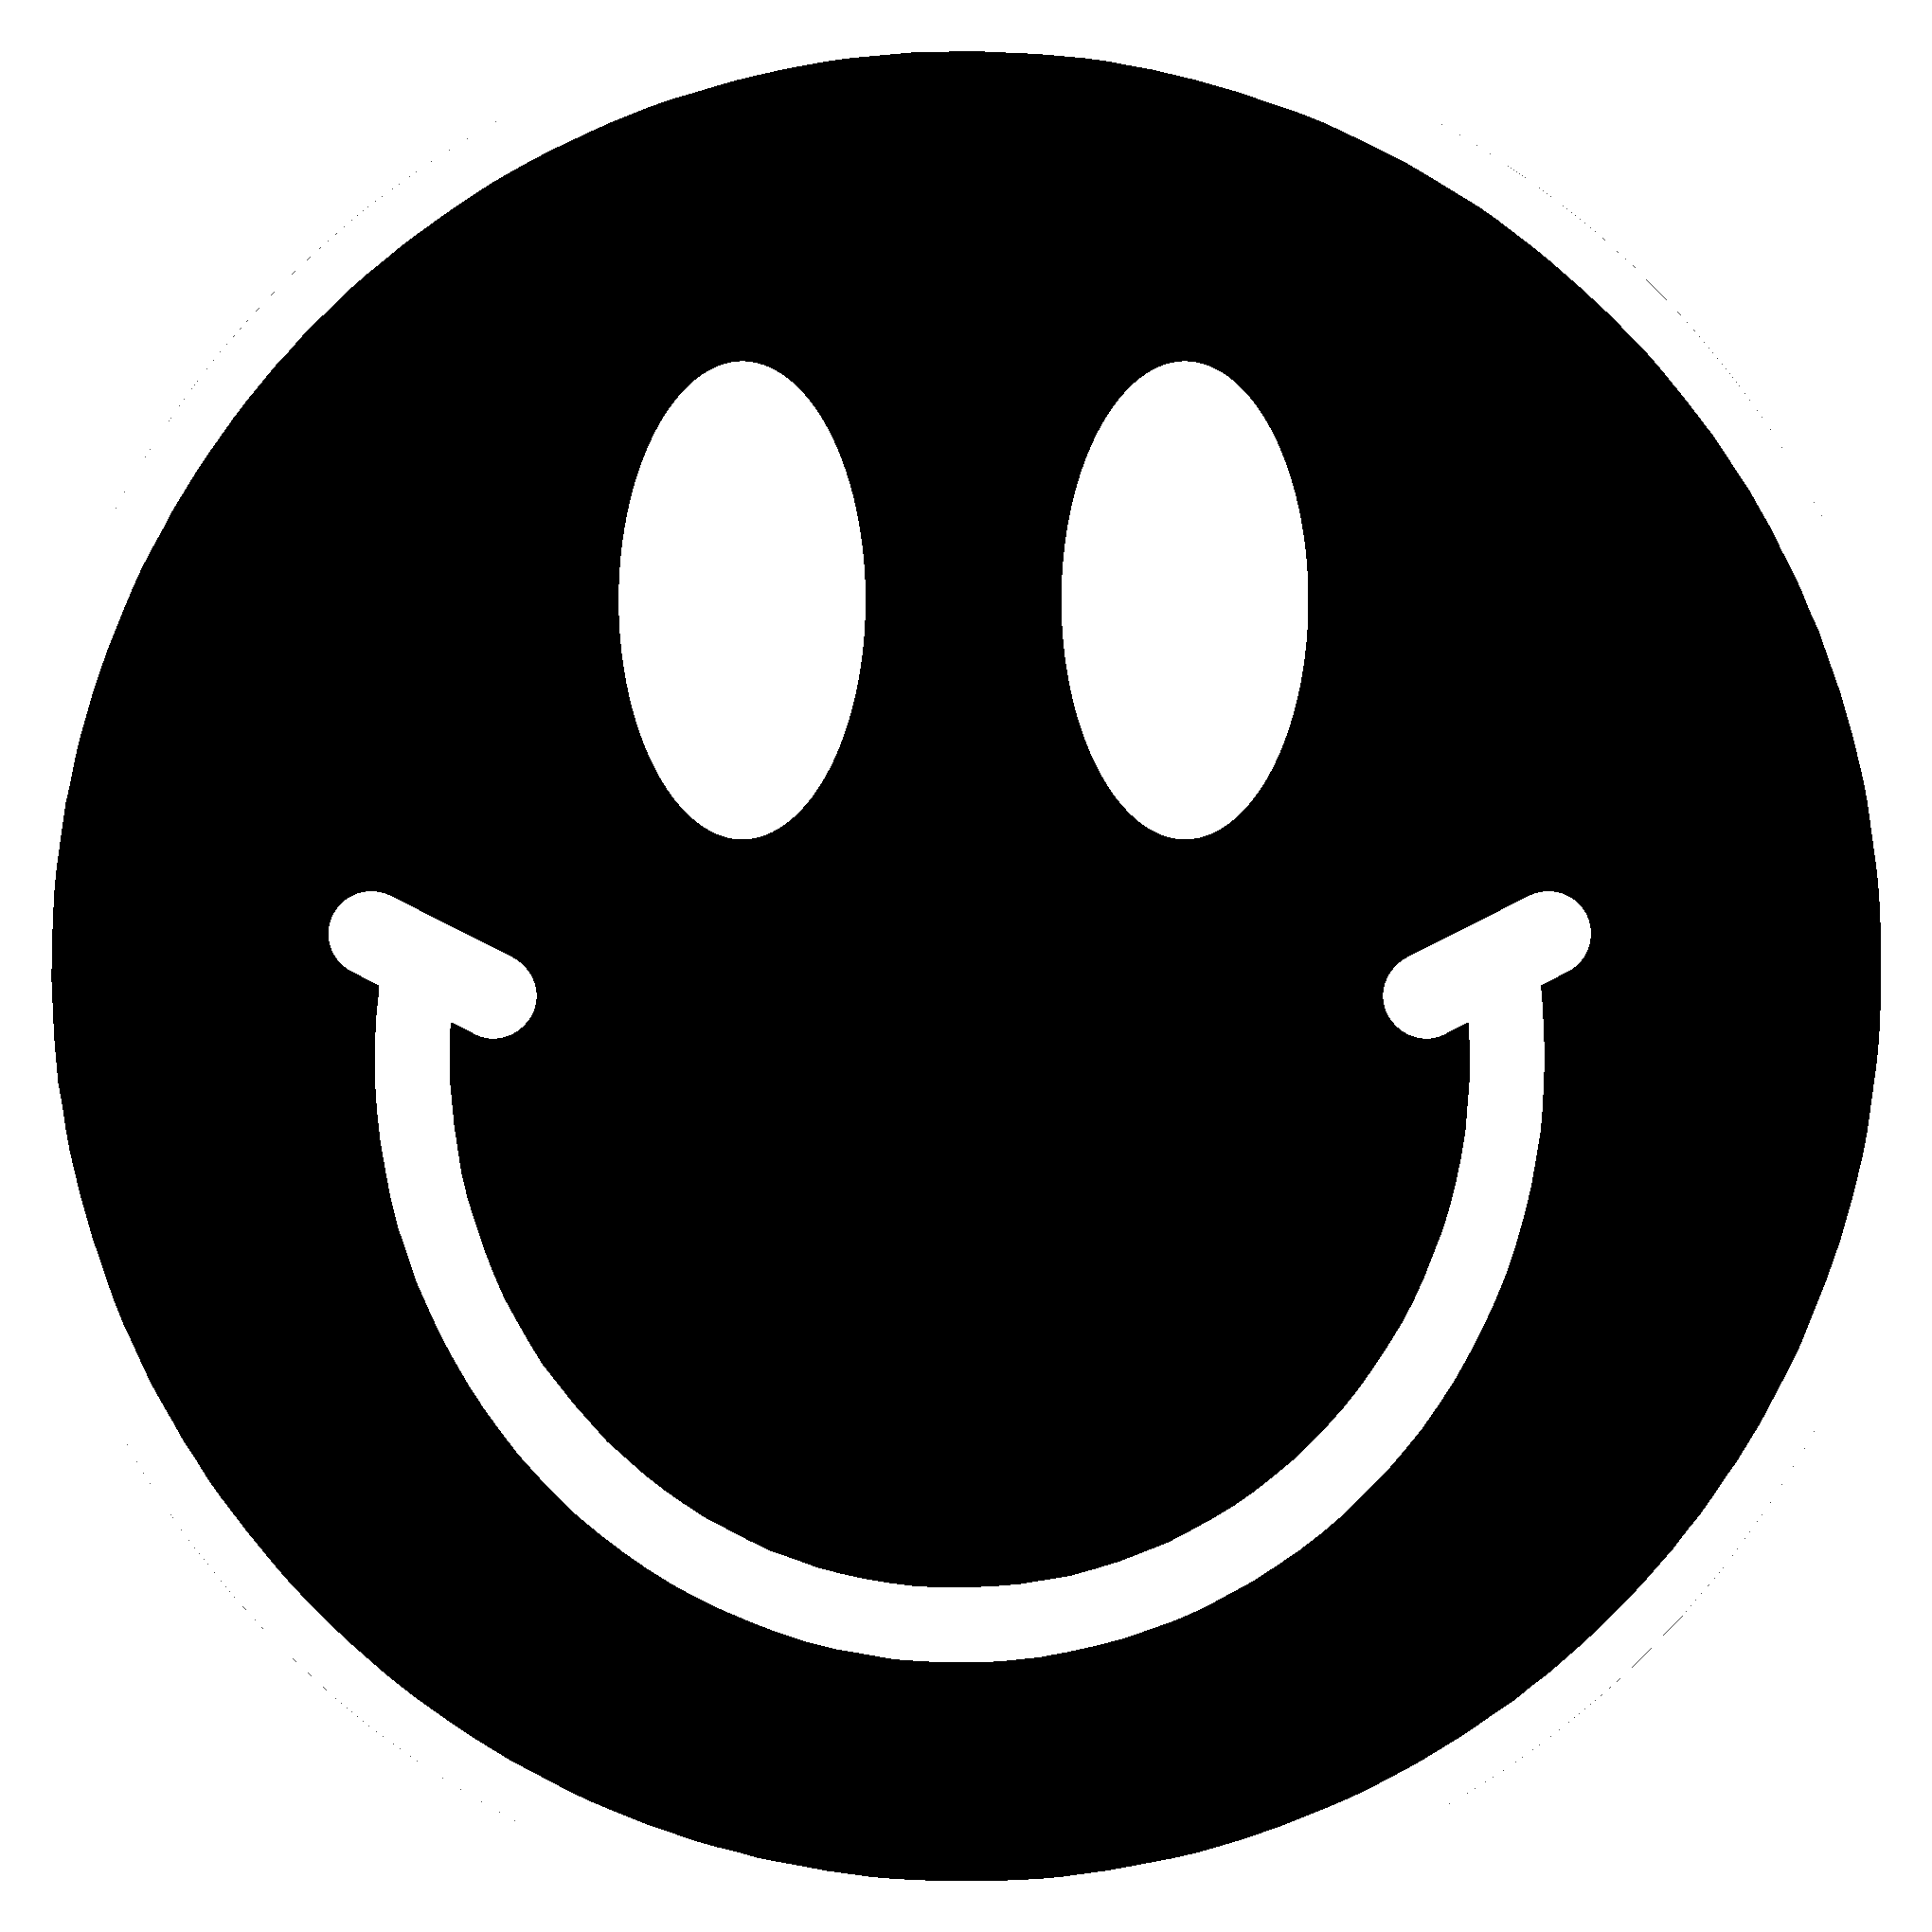 Smiley face clipart black and white no background royalty free stock PNG Happy Face Black And White Transparent Happy Face Black ... royalty free stock